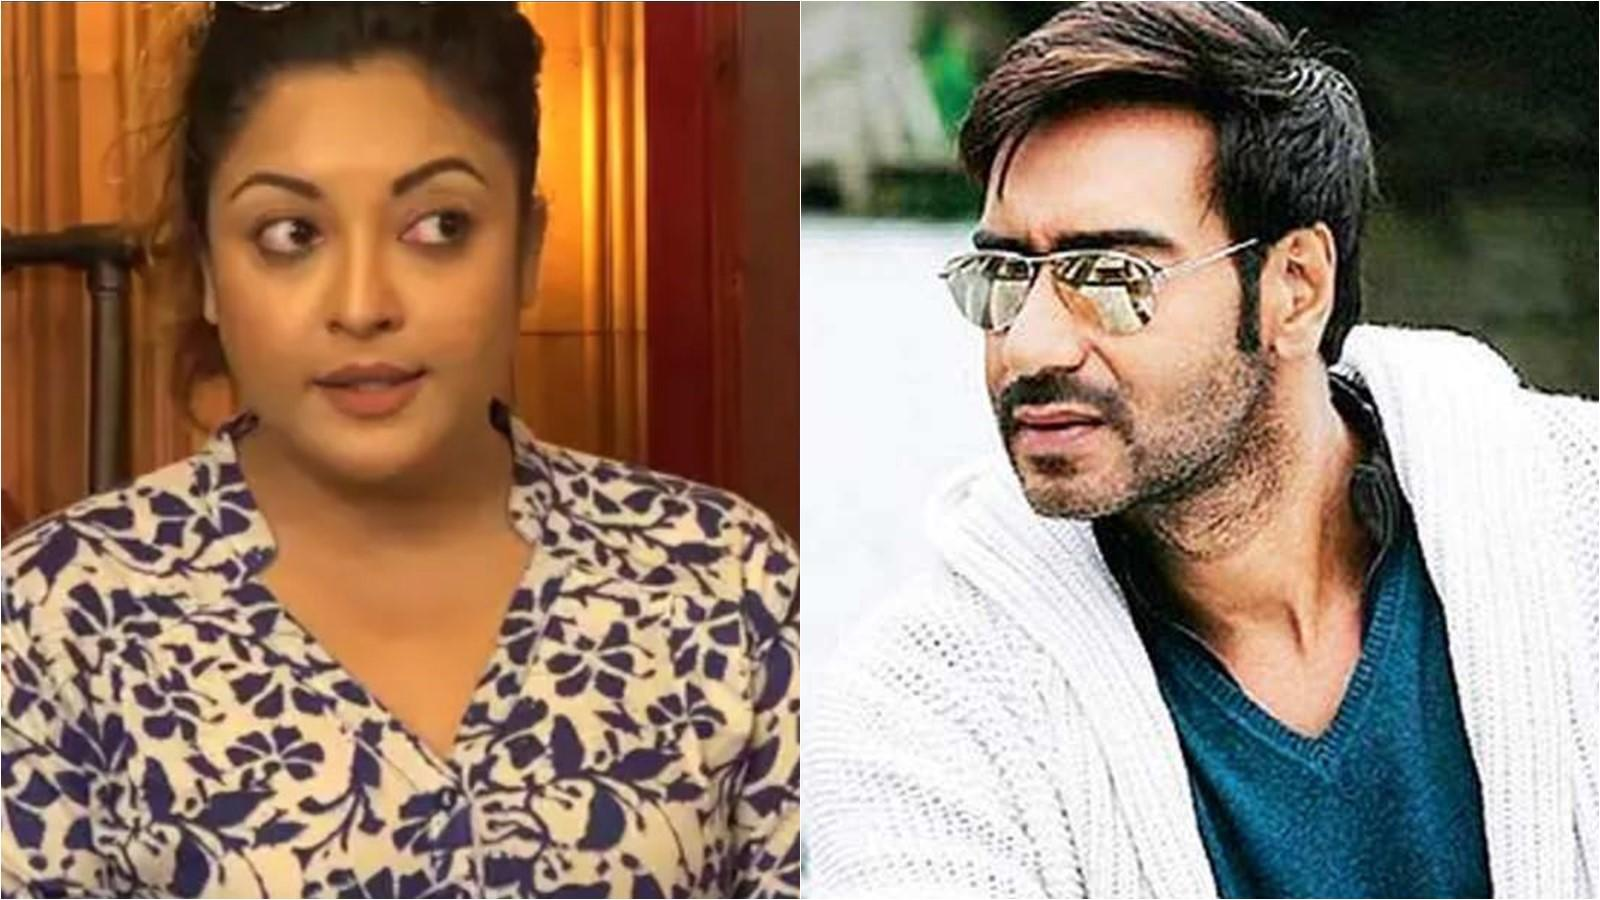 ajay-devgn-on-tanushree-duttas-allegations-why-am-i-being-singled-out-as-insensitive